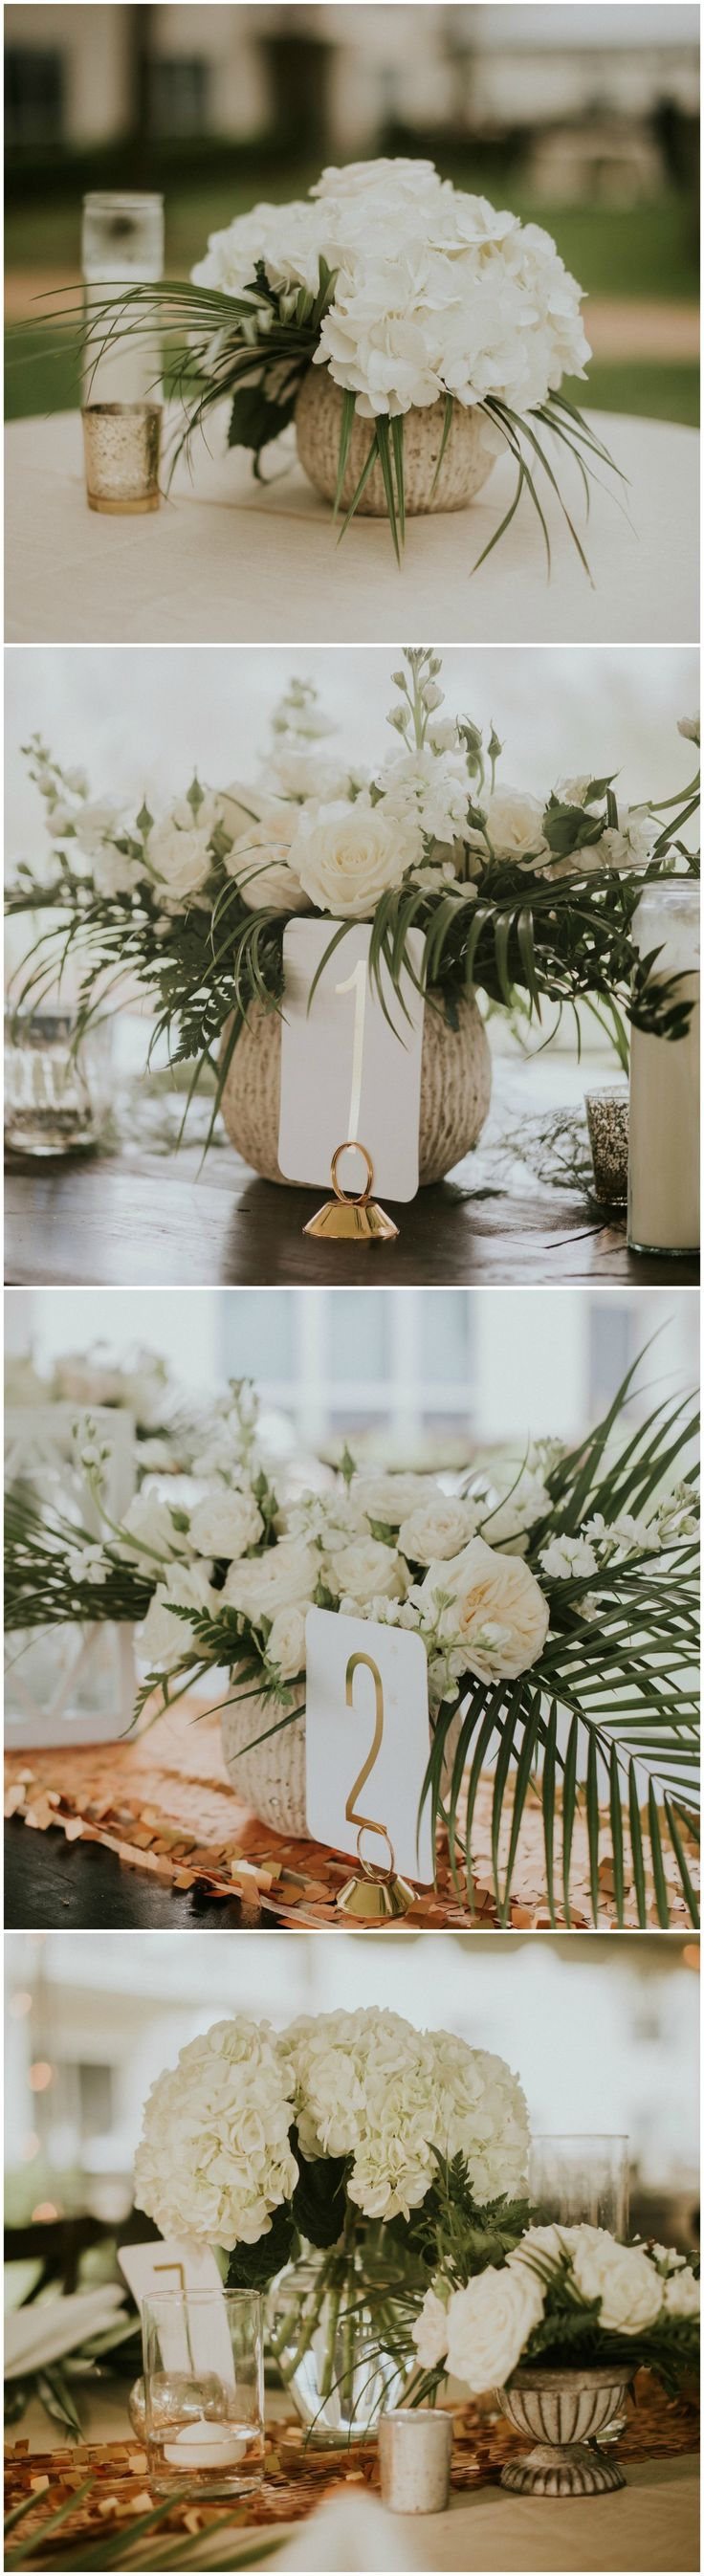 Wedding reception floral centerpieces, neutral, cream florals, tropical palm fronds, white roses, chic wedding decor, white and gold table numbers // Jessi Field Photography